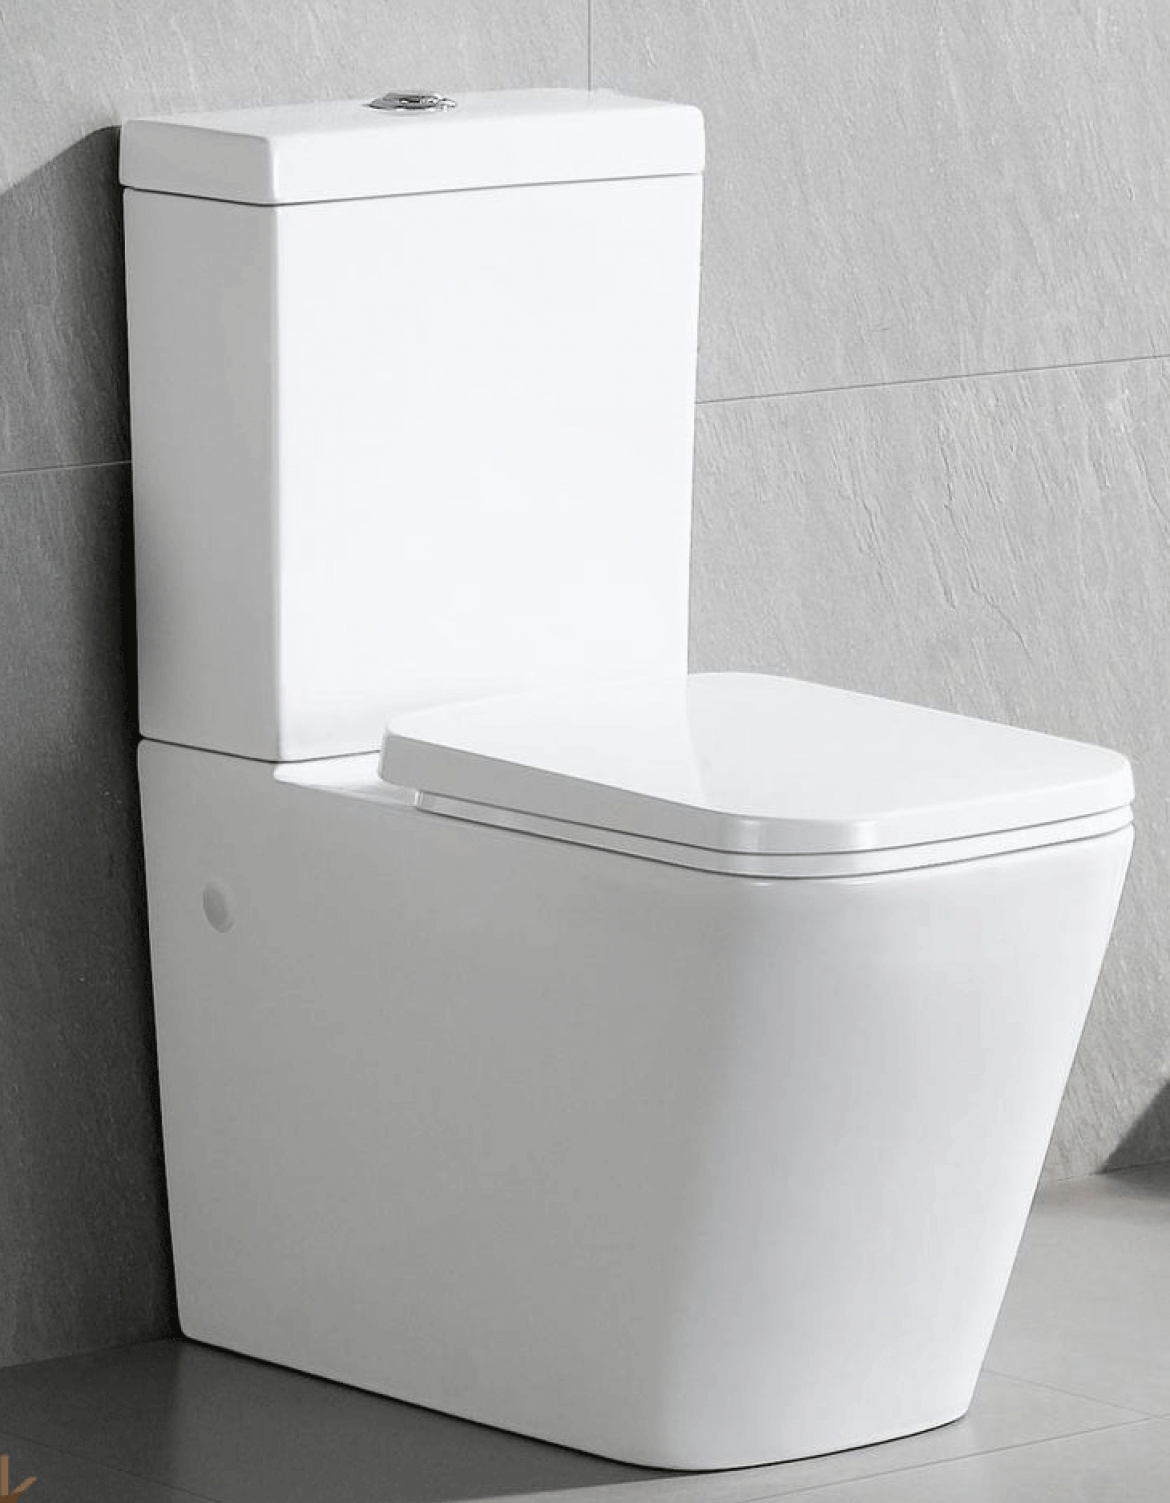 Bathroom Ceramic Square Toilet suite [L01804]